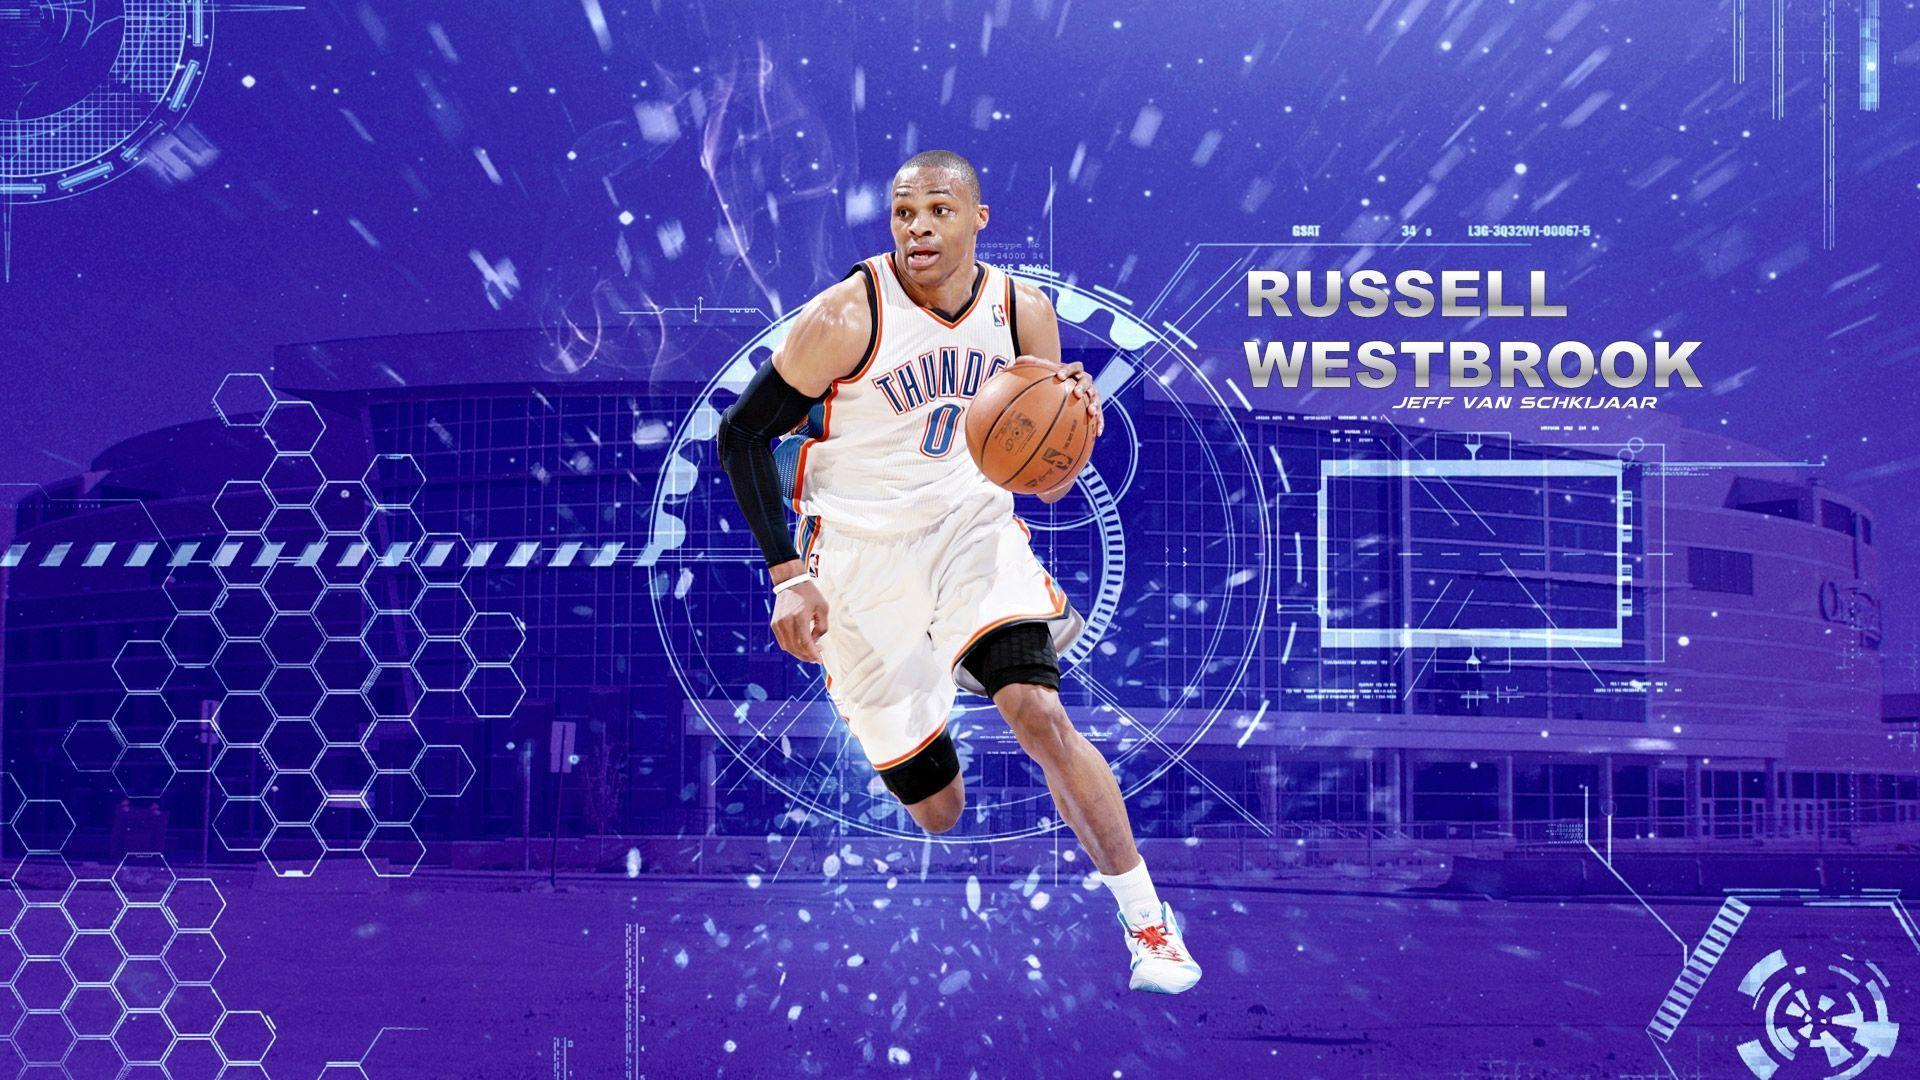 Russell Westbrook Wallpapers - Wallpaper Cave